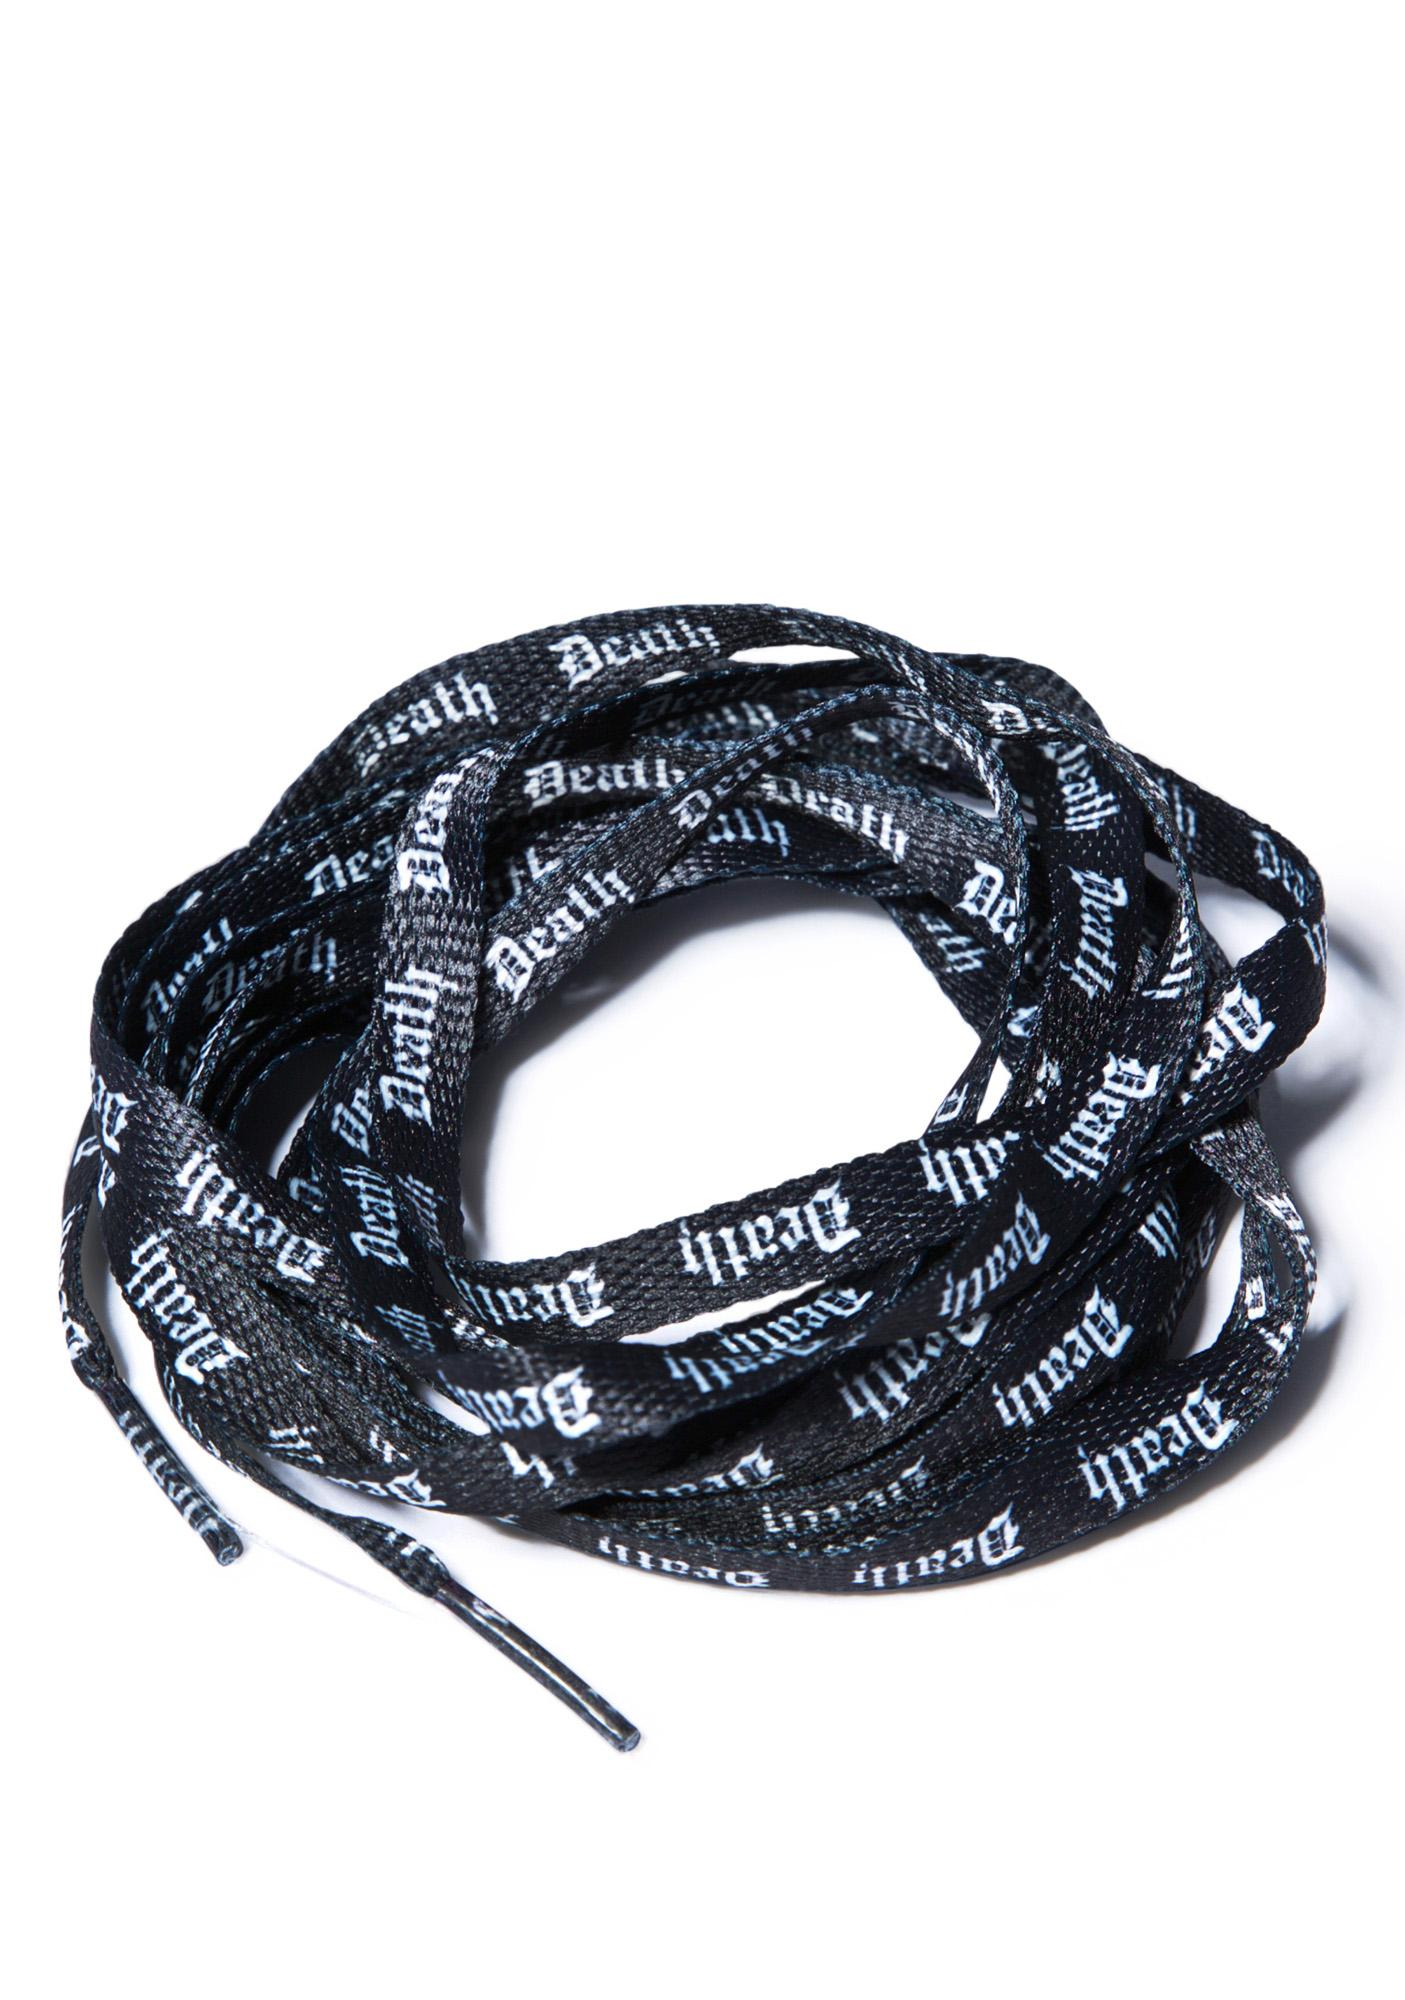 Mishka Neighborhood Sniper Shoe Laces